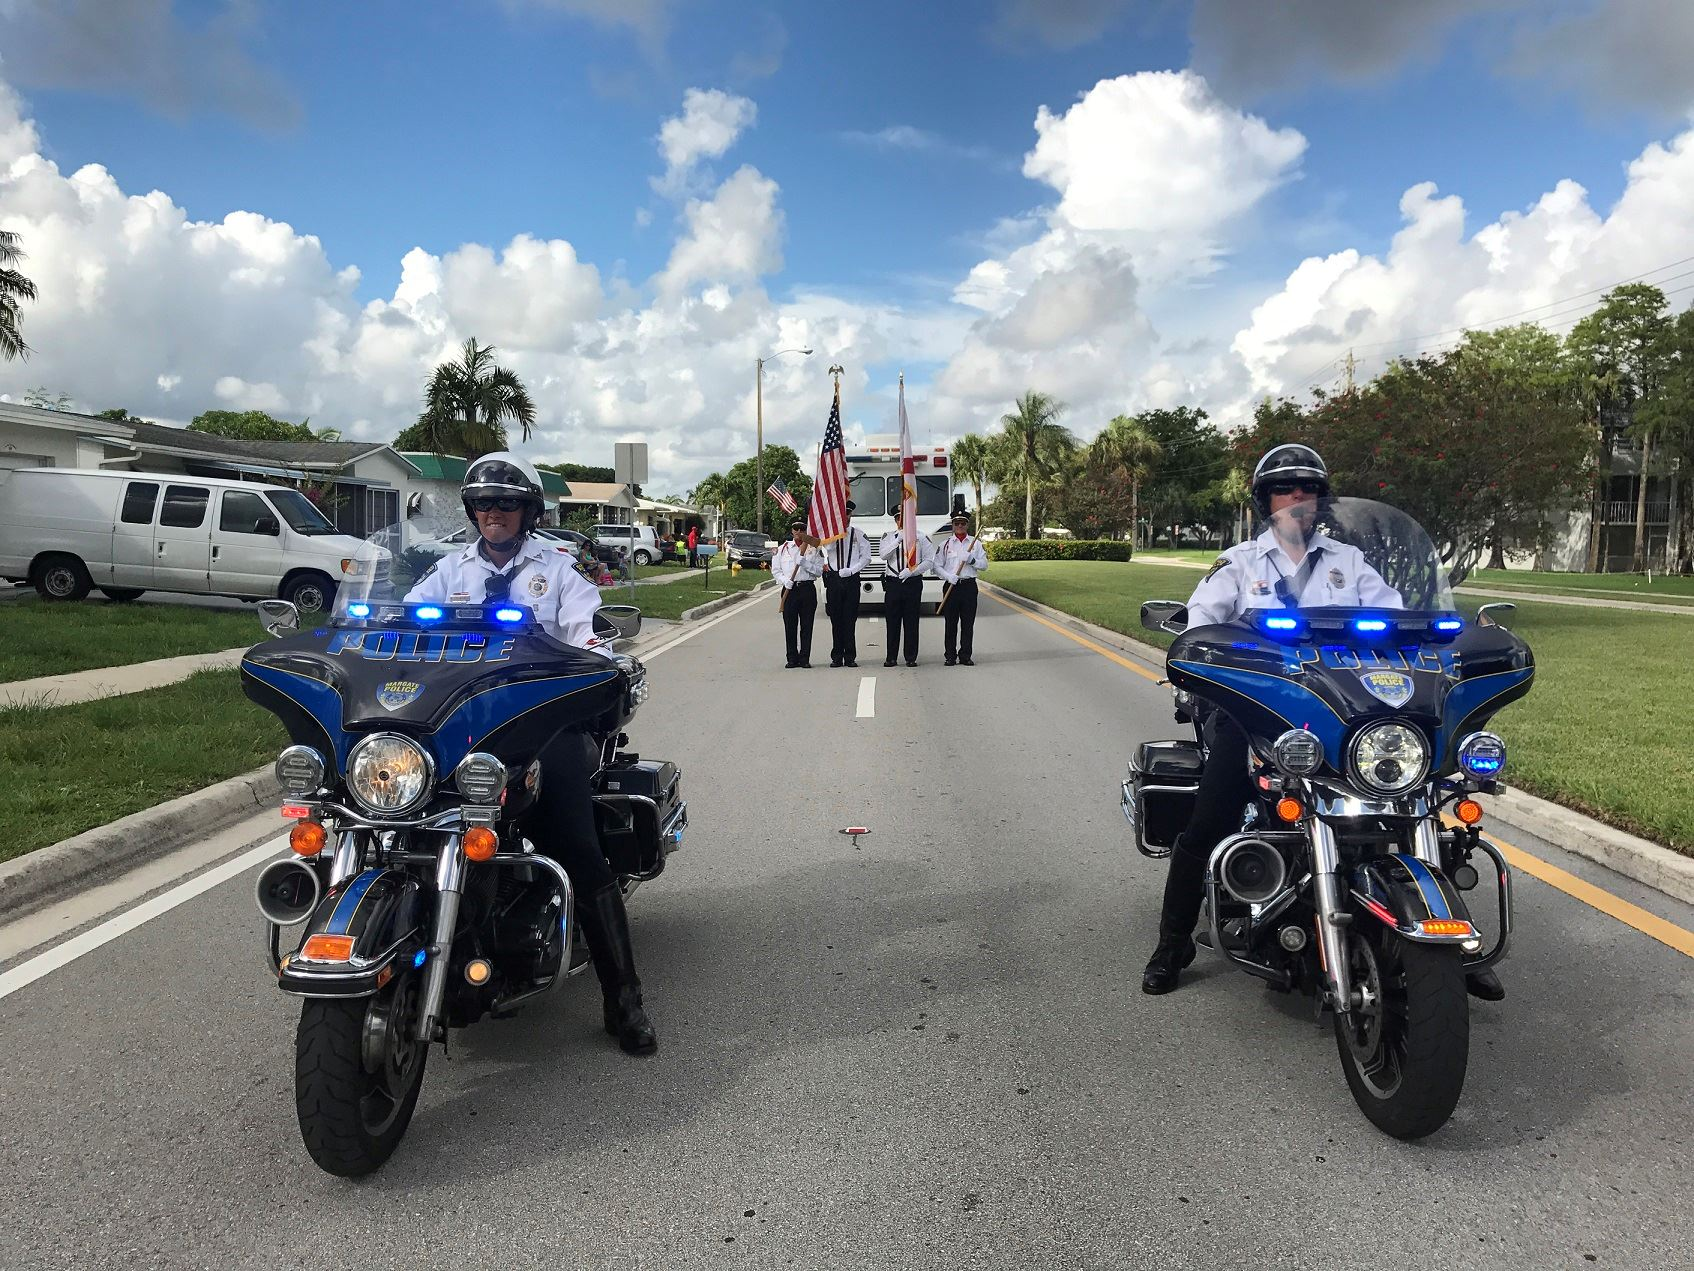 Image of Motorcycle Officers